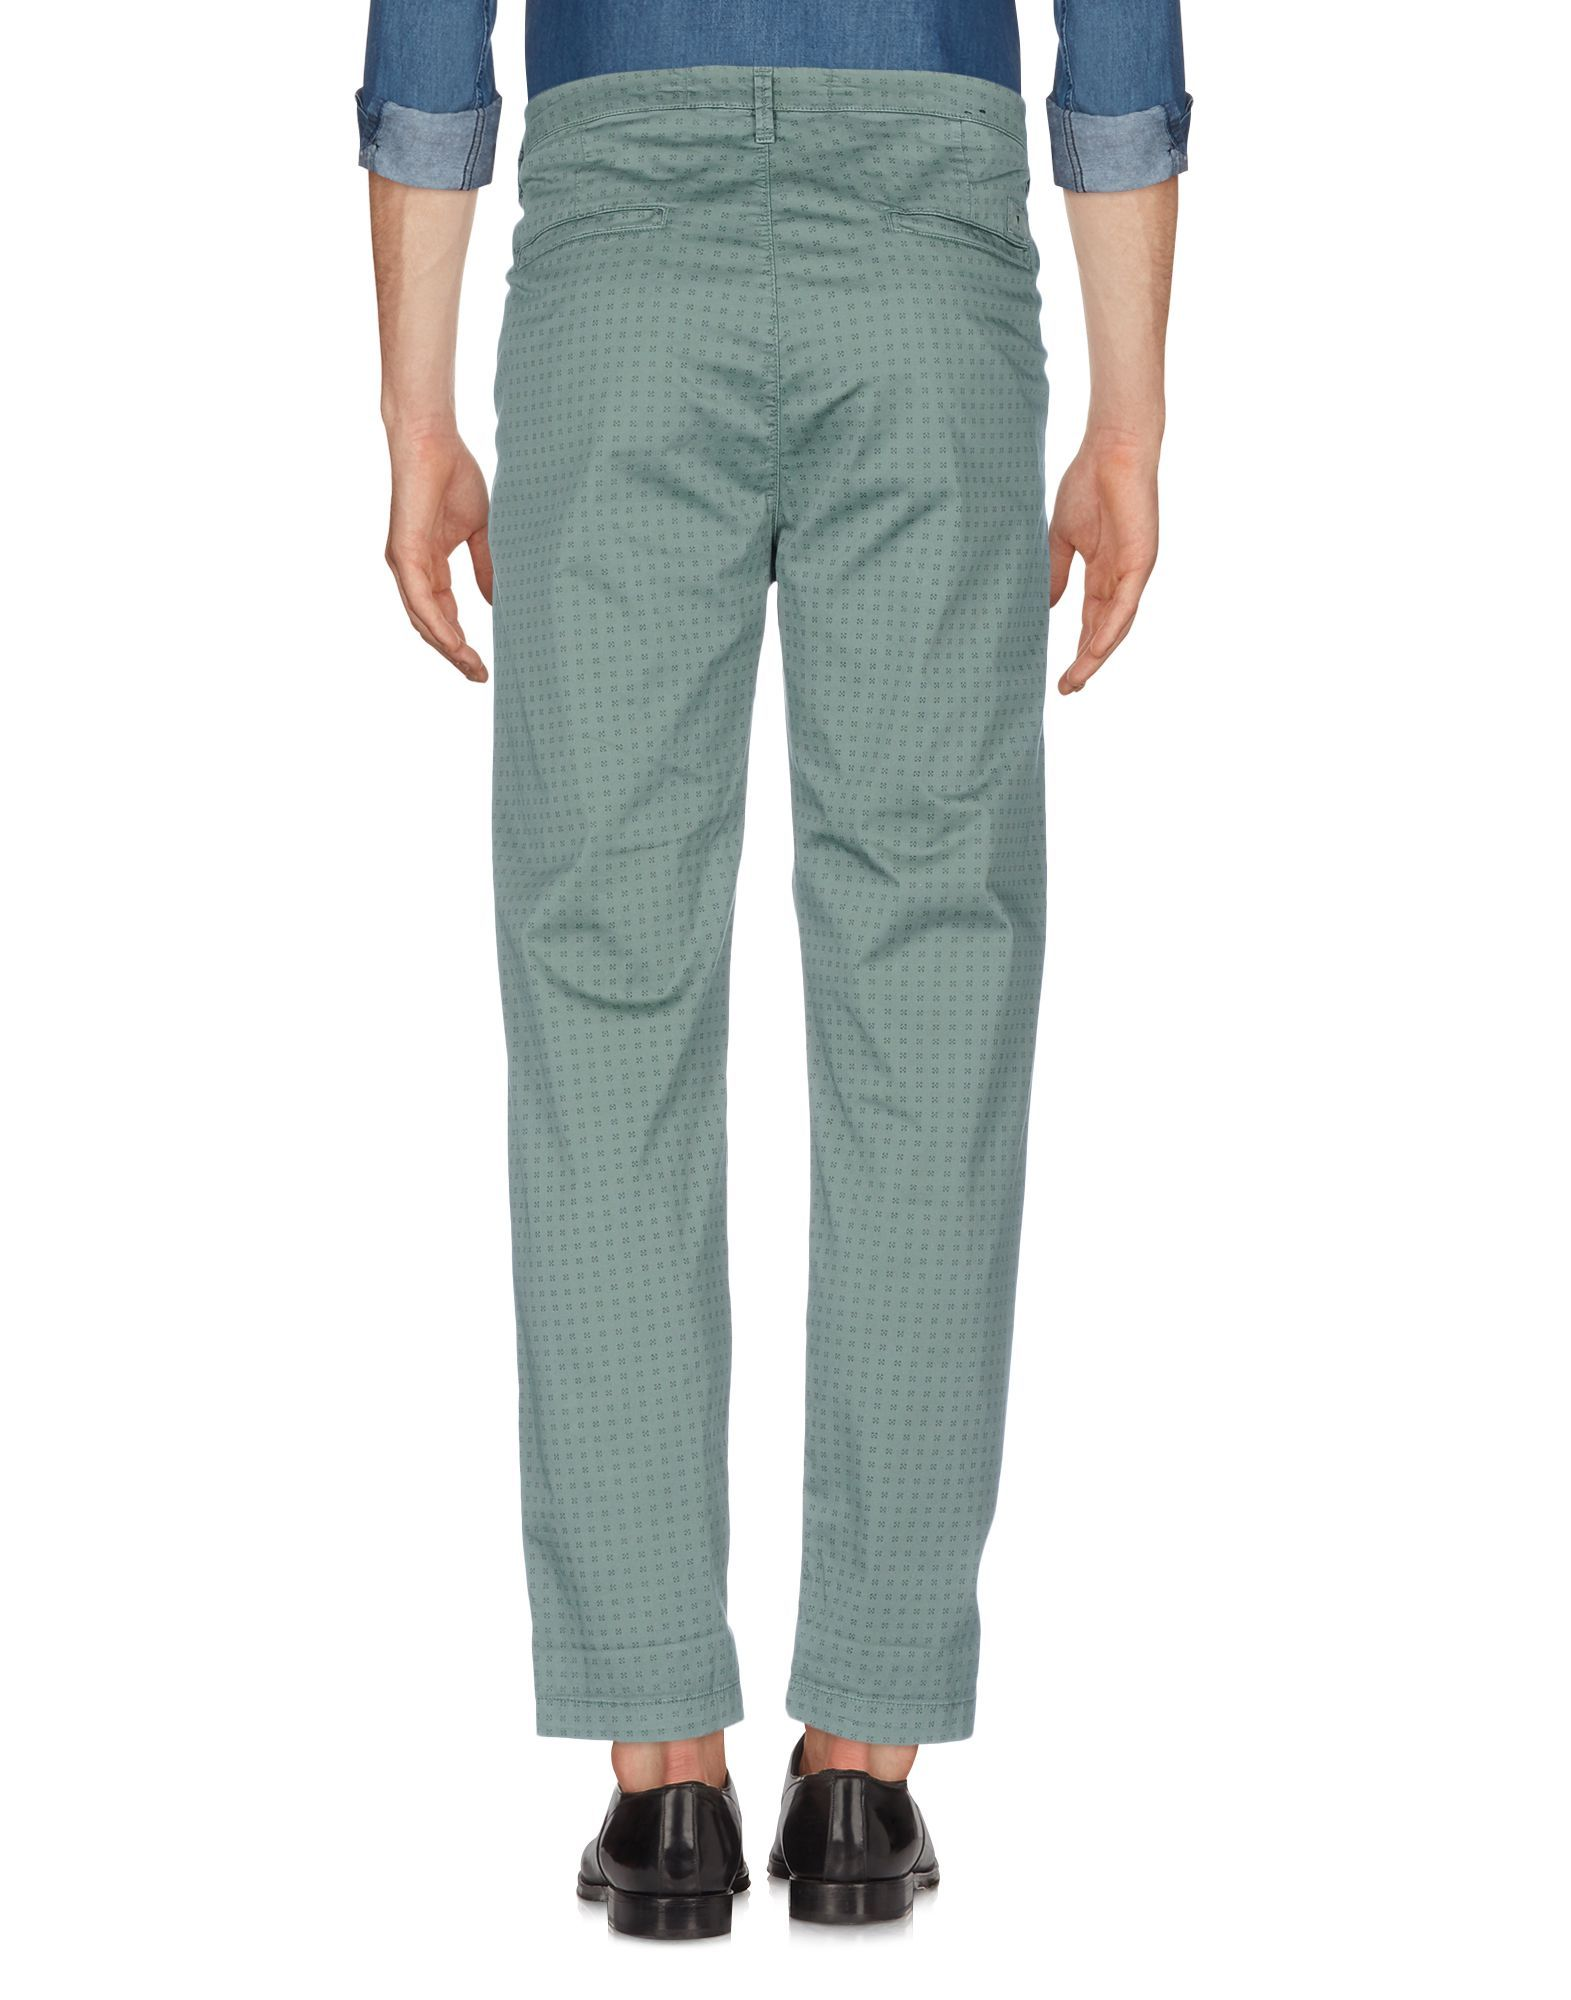 TROUSERS Man Guess Green Cotton